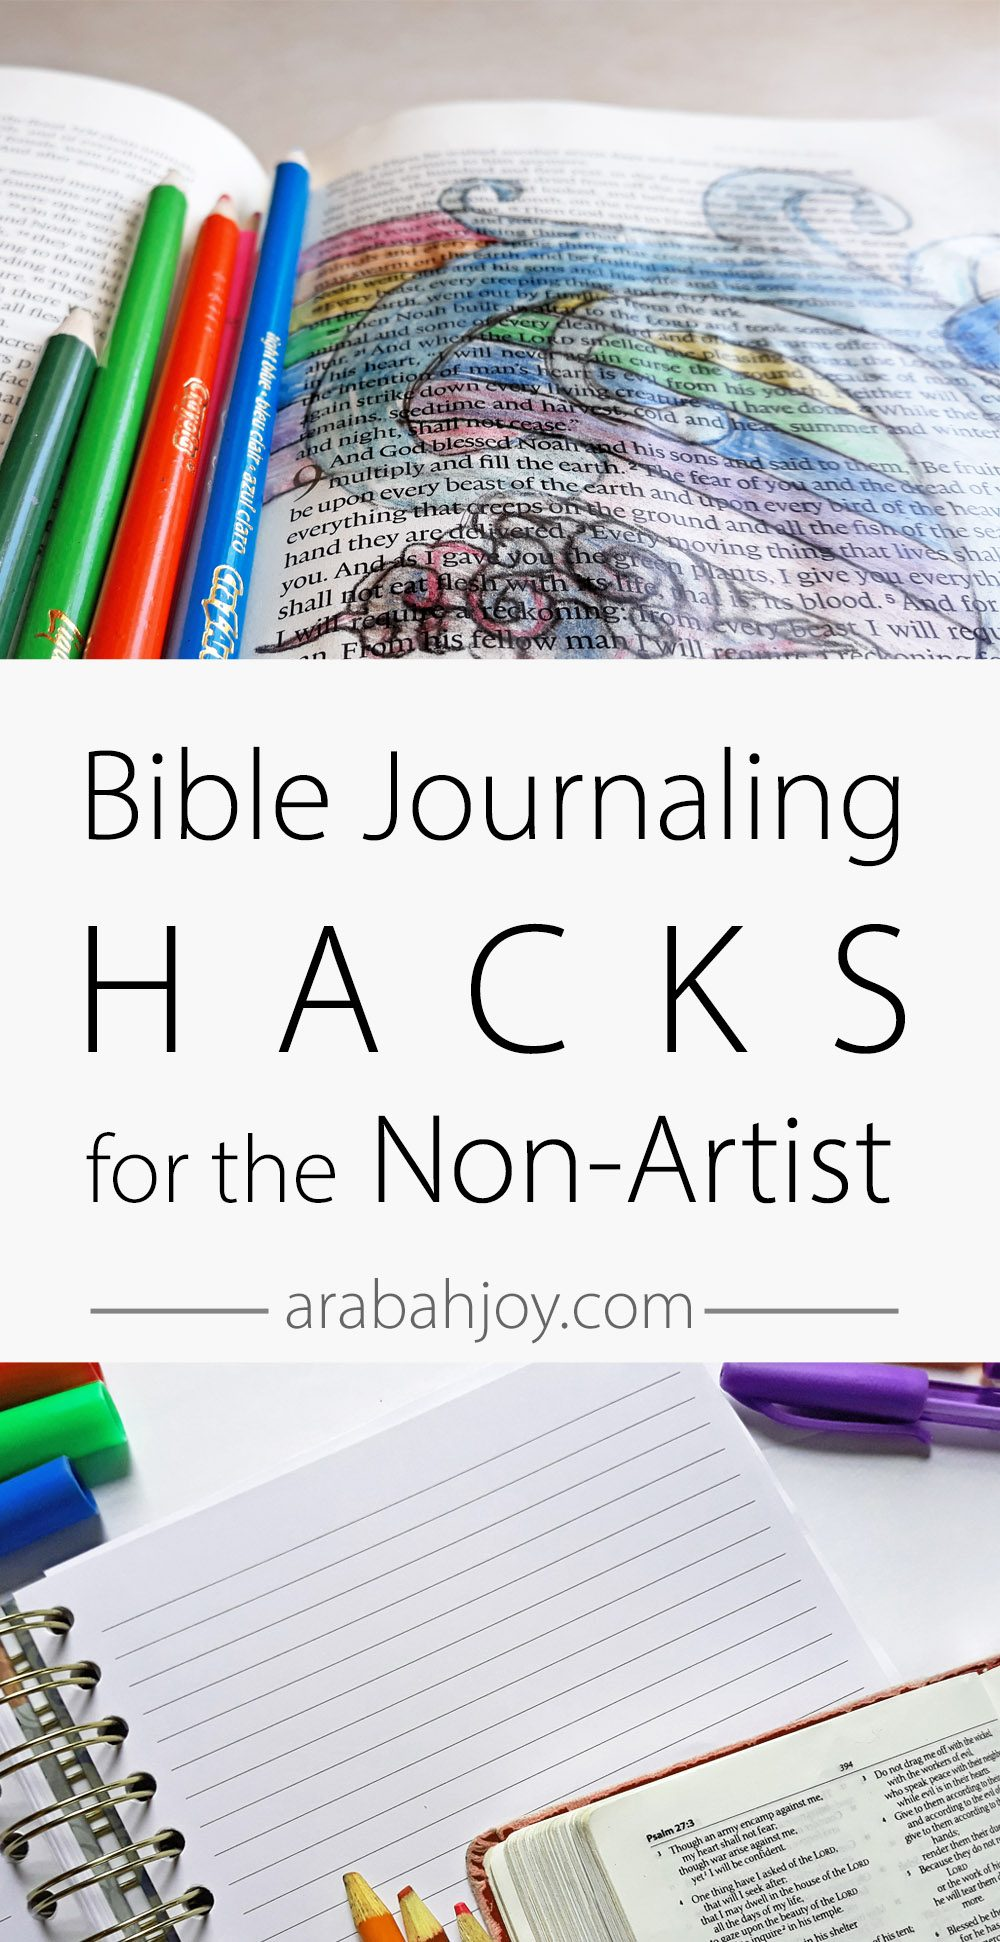 These Bible journaling tips for beginners will help you learn the art of Bible journaling. Be sure to grab your free Bible journaling kit!